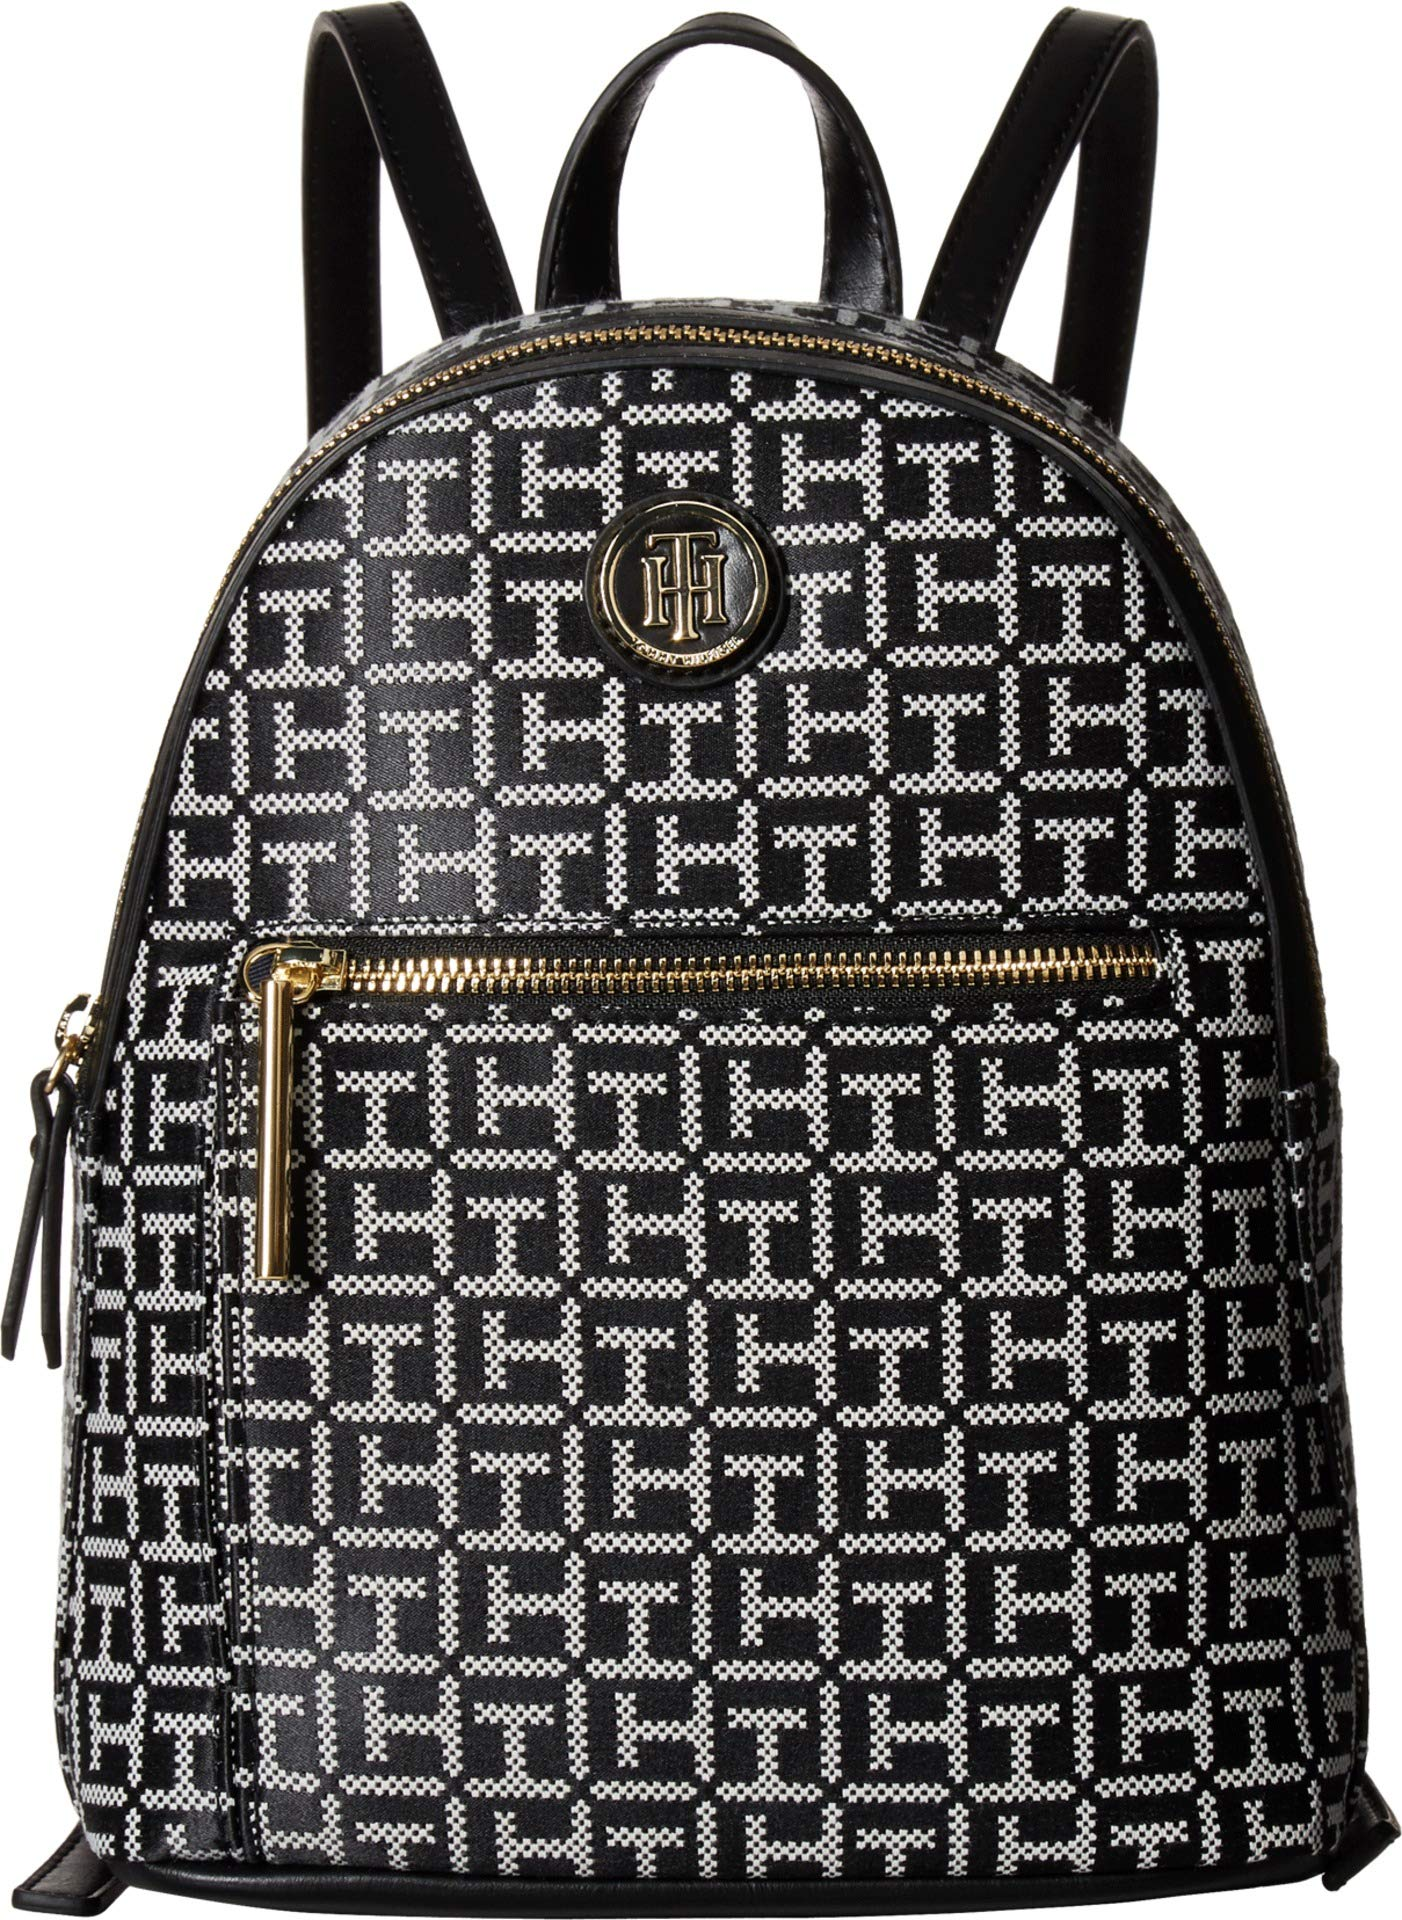 Tommy Hilfiger Women's Geneva Backpack Black/White One Size by Tommy Hilfiger